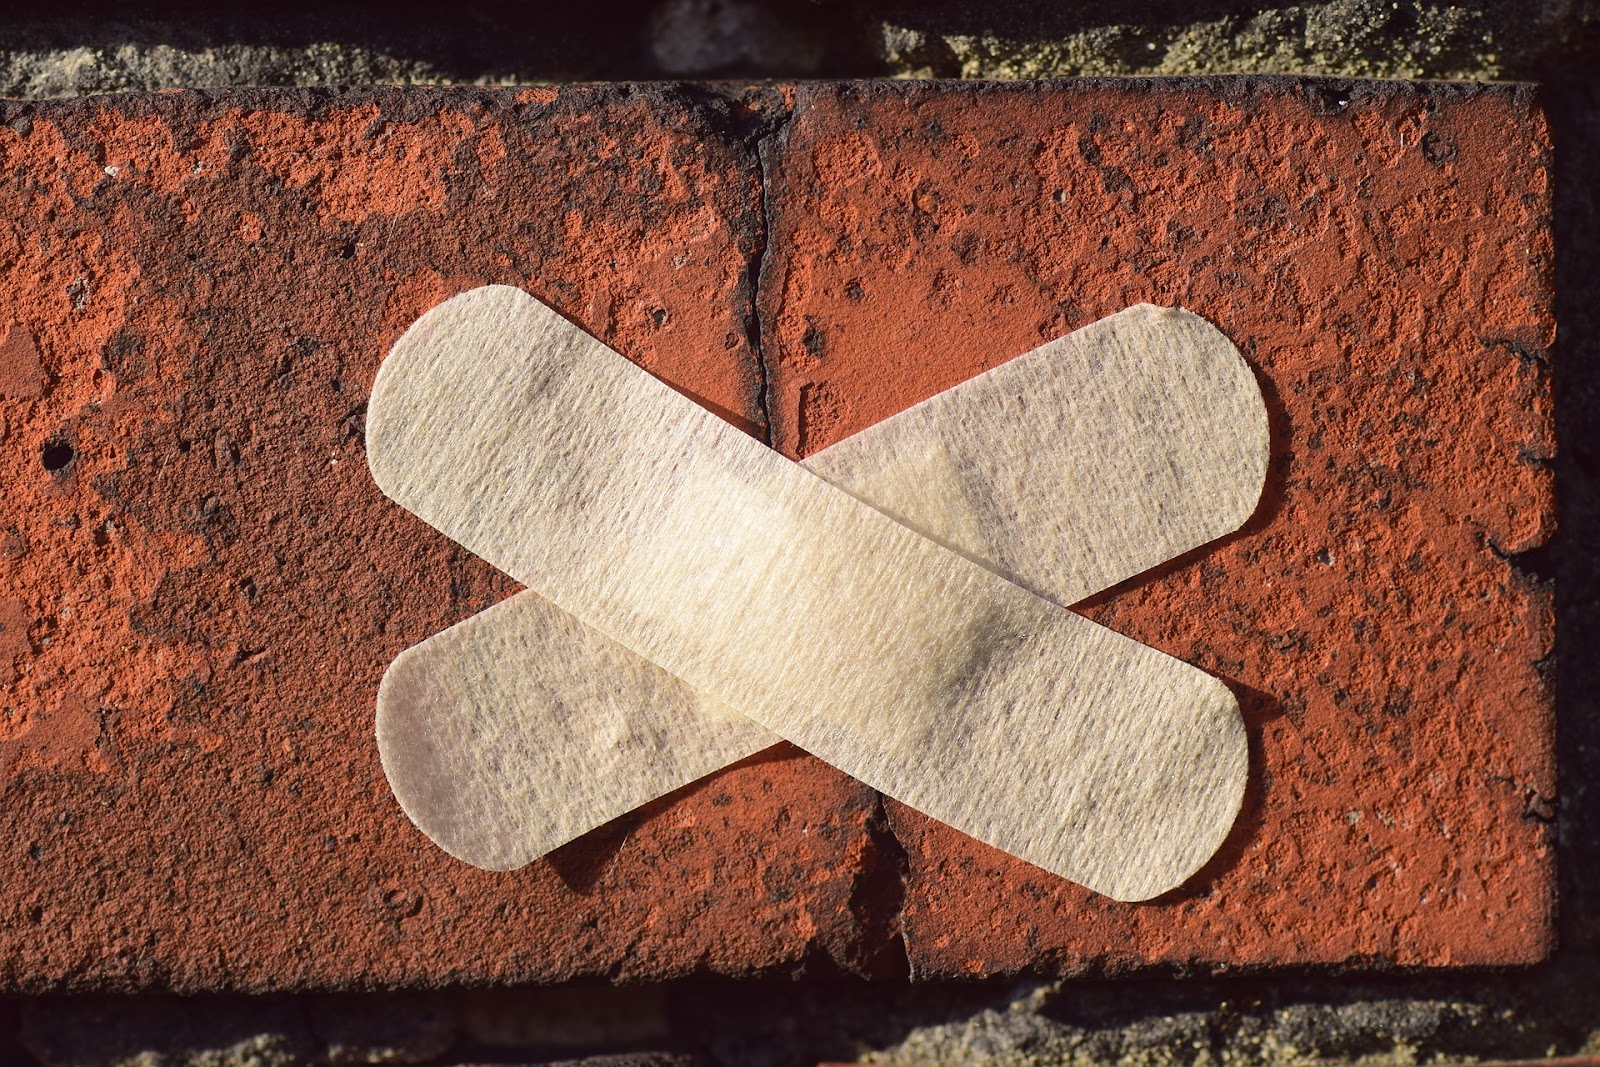 Two pieces of tape fixing a cracked brick